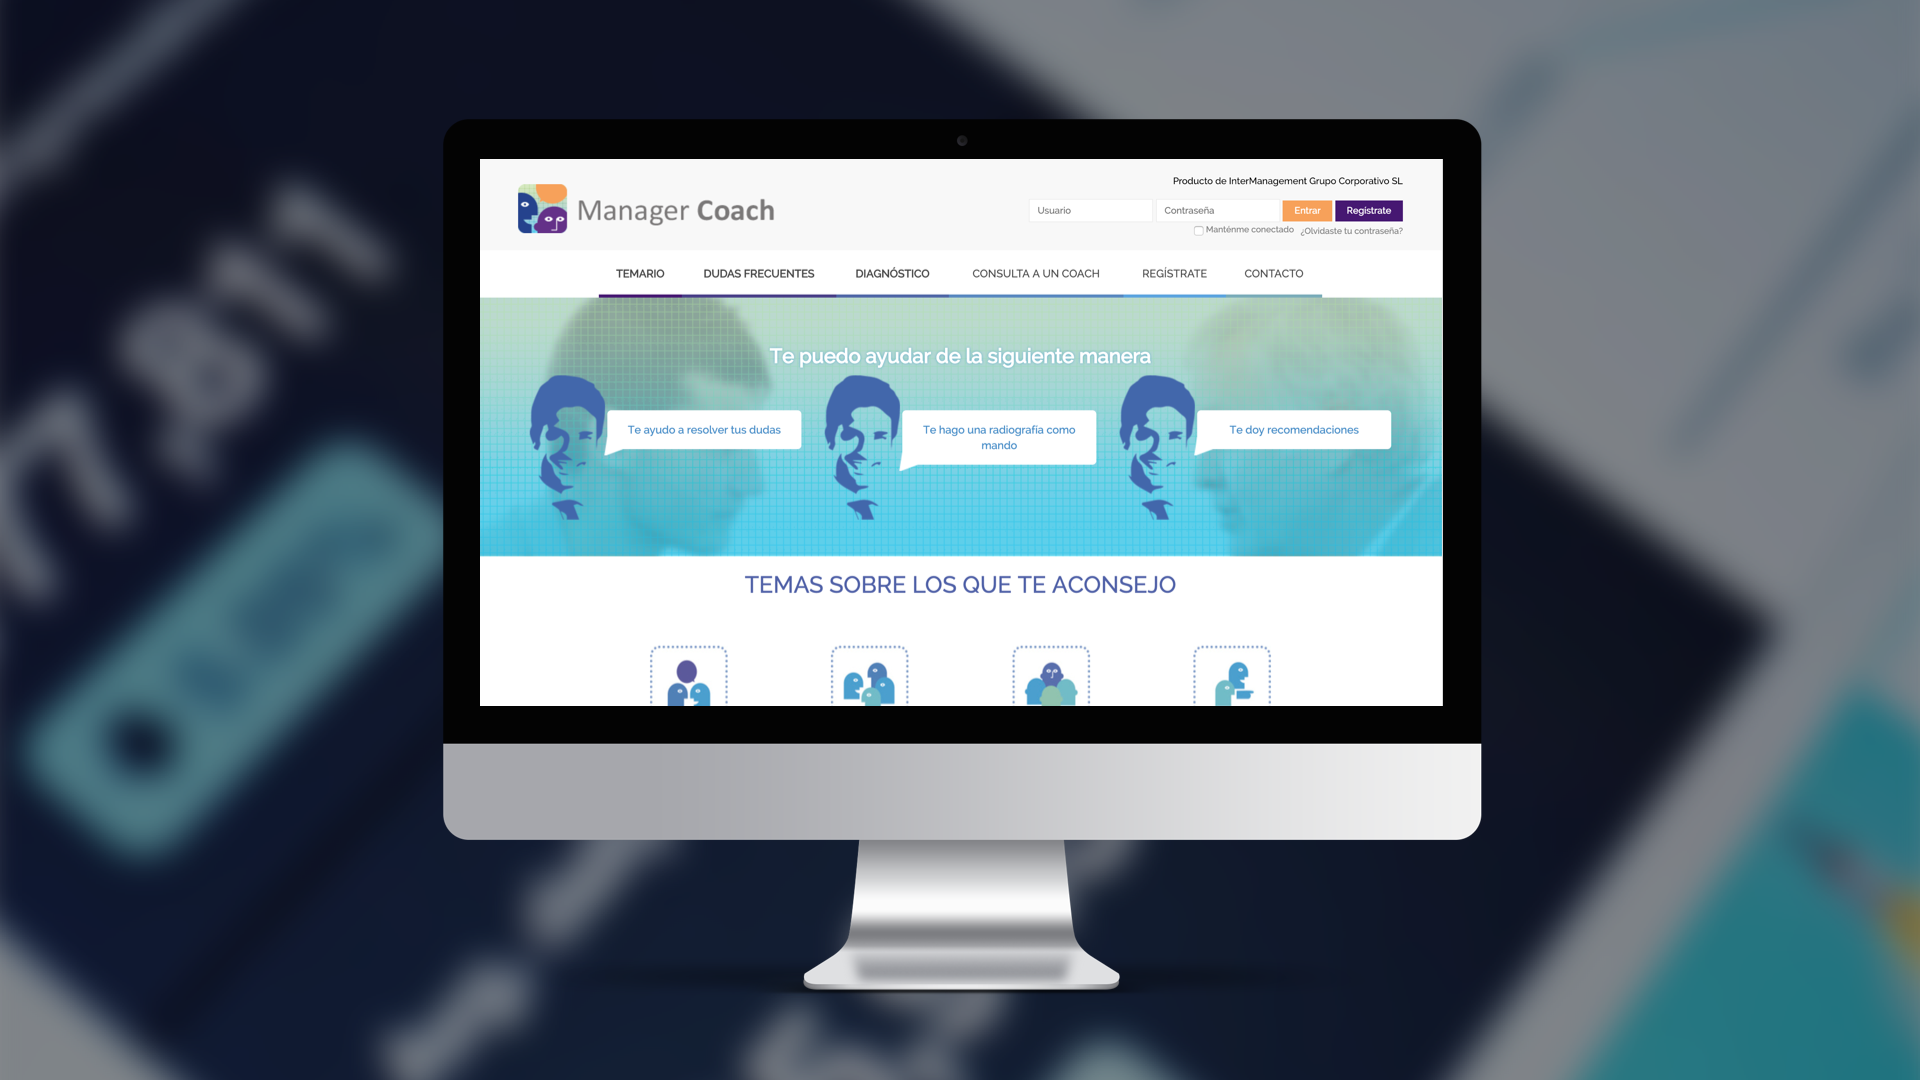 Section of the Manager Coach web platform